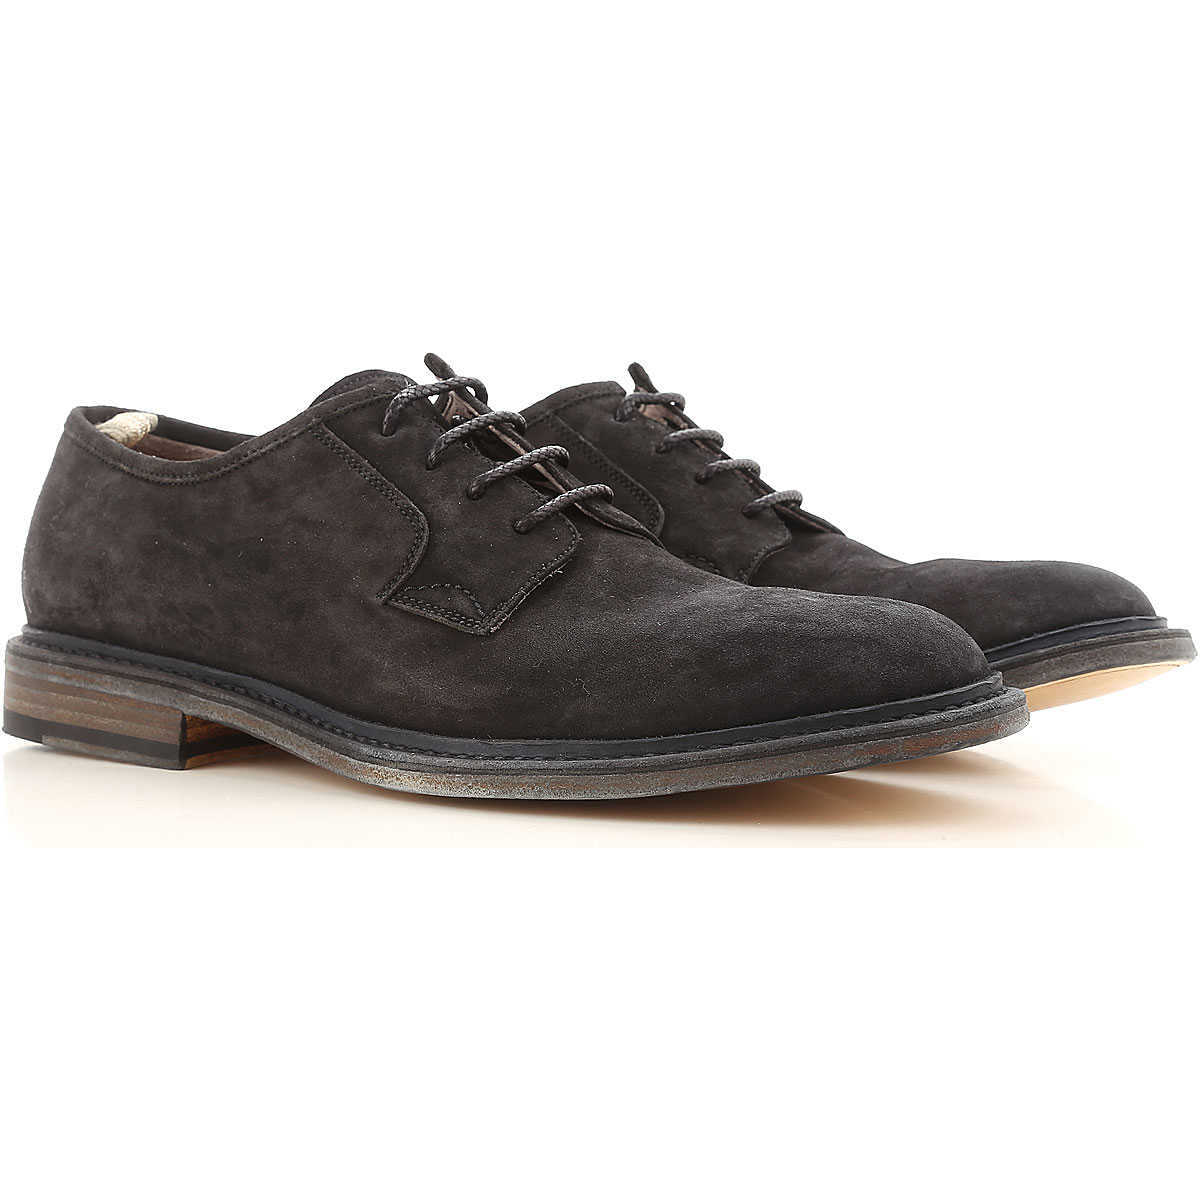 Officine Creative Lace Up Shoes for Men Oxfords 10.5 7.5 8 8.5 9 9.25 Derbies and Brogues On Sale UK - GOOFASH